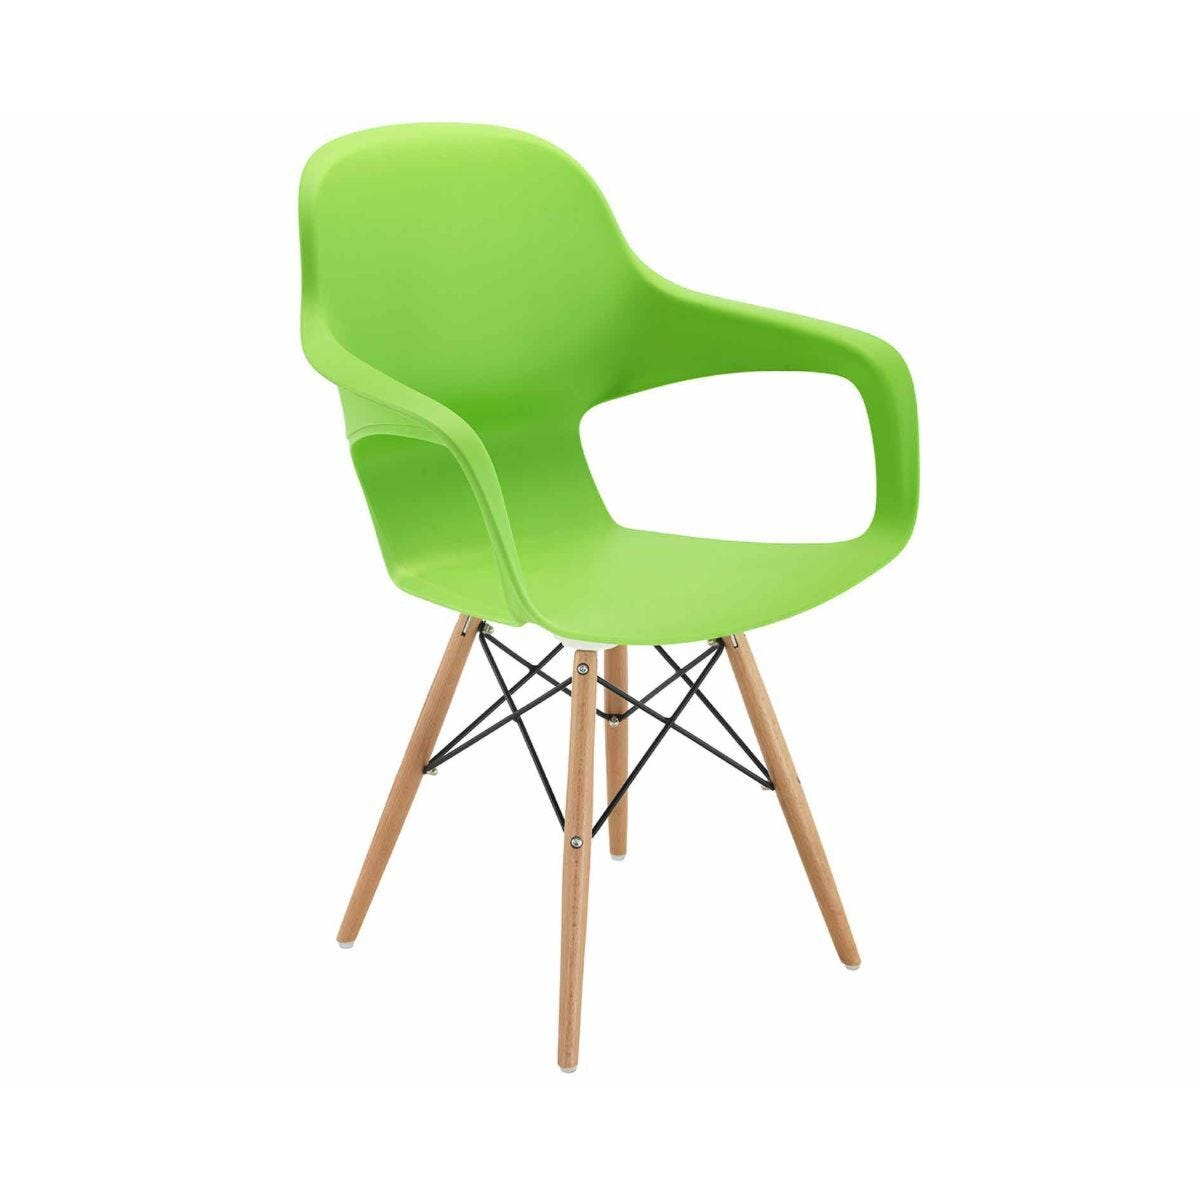 TC Office Ariel 2 Retro Chair with Wooden and Wire Base Green